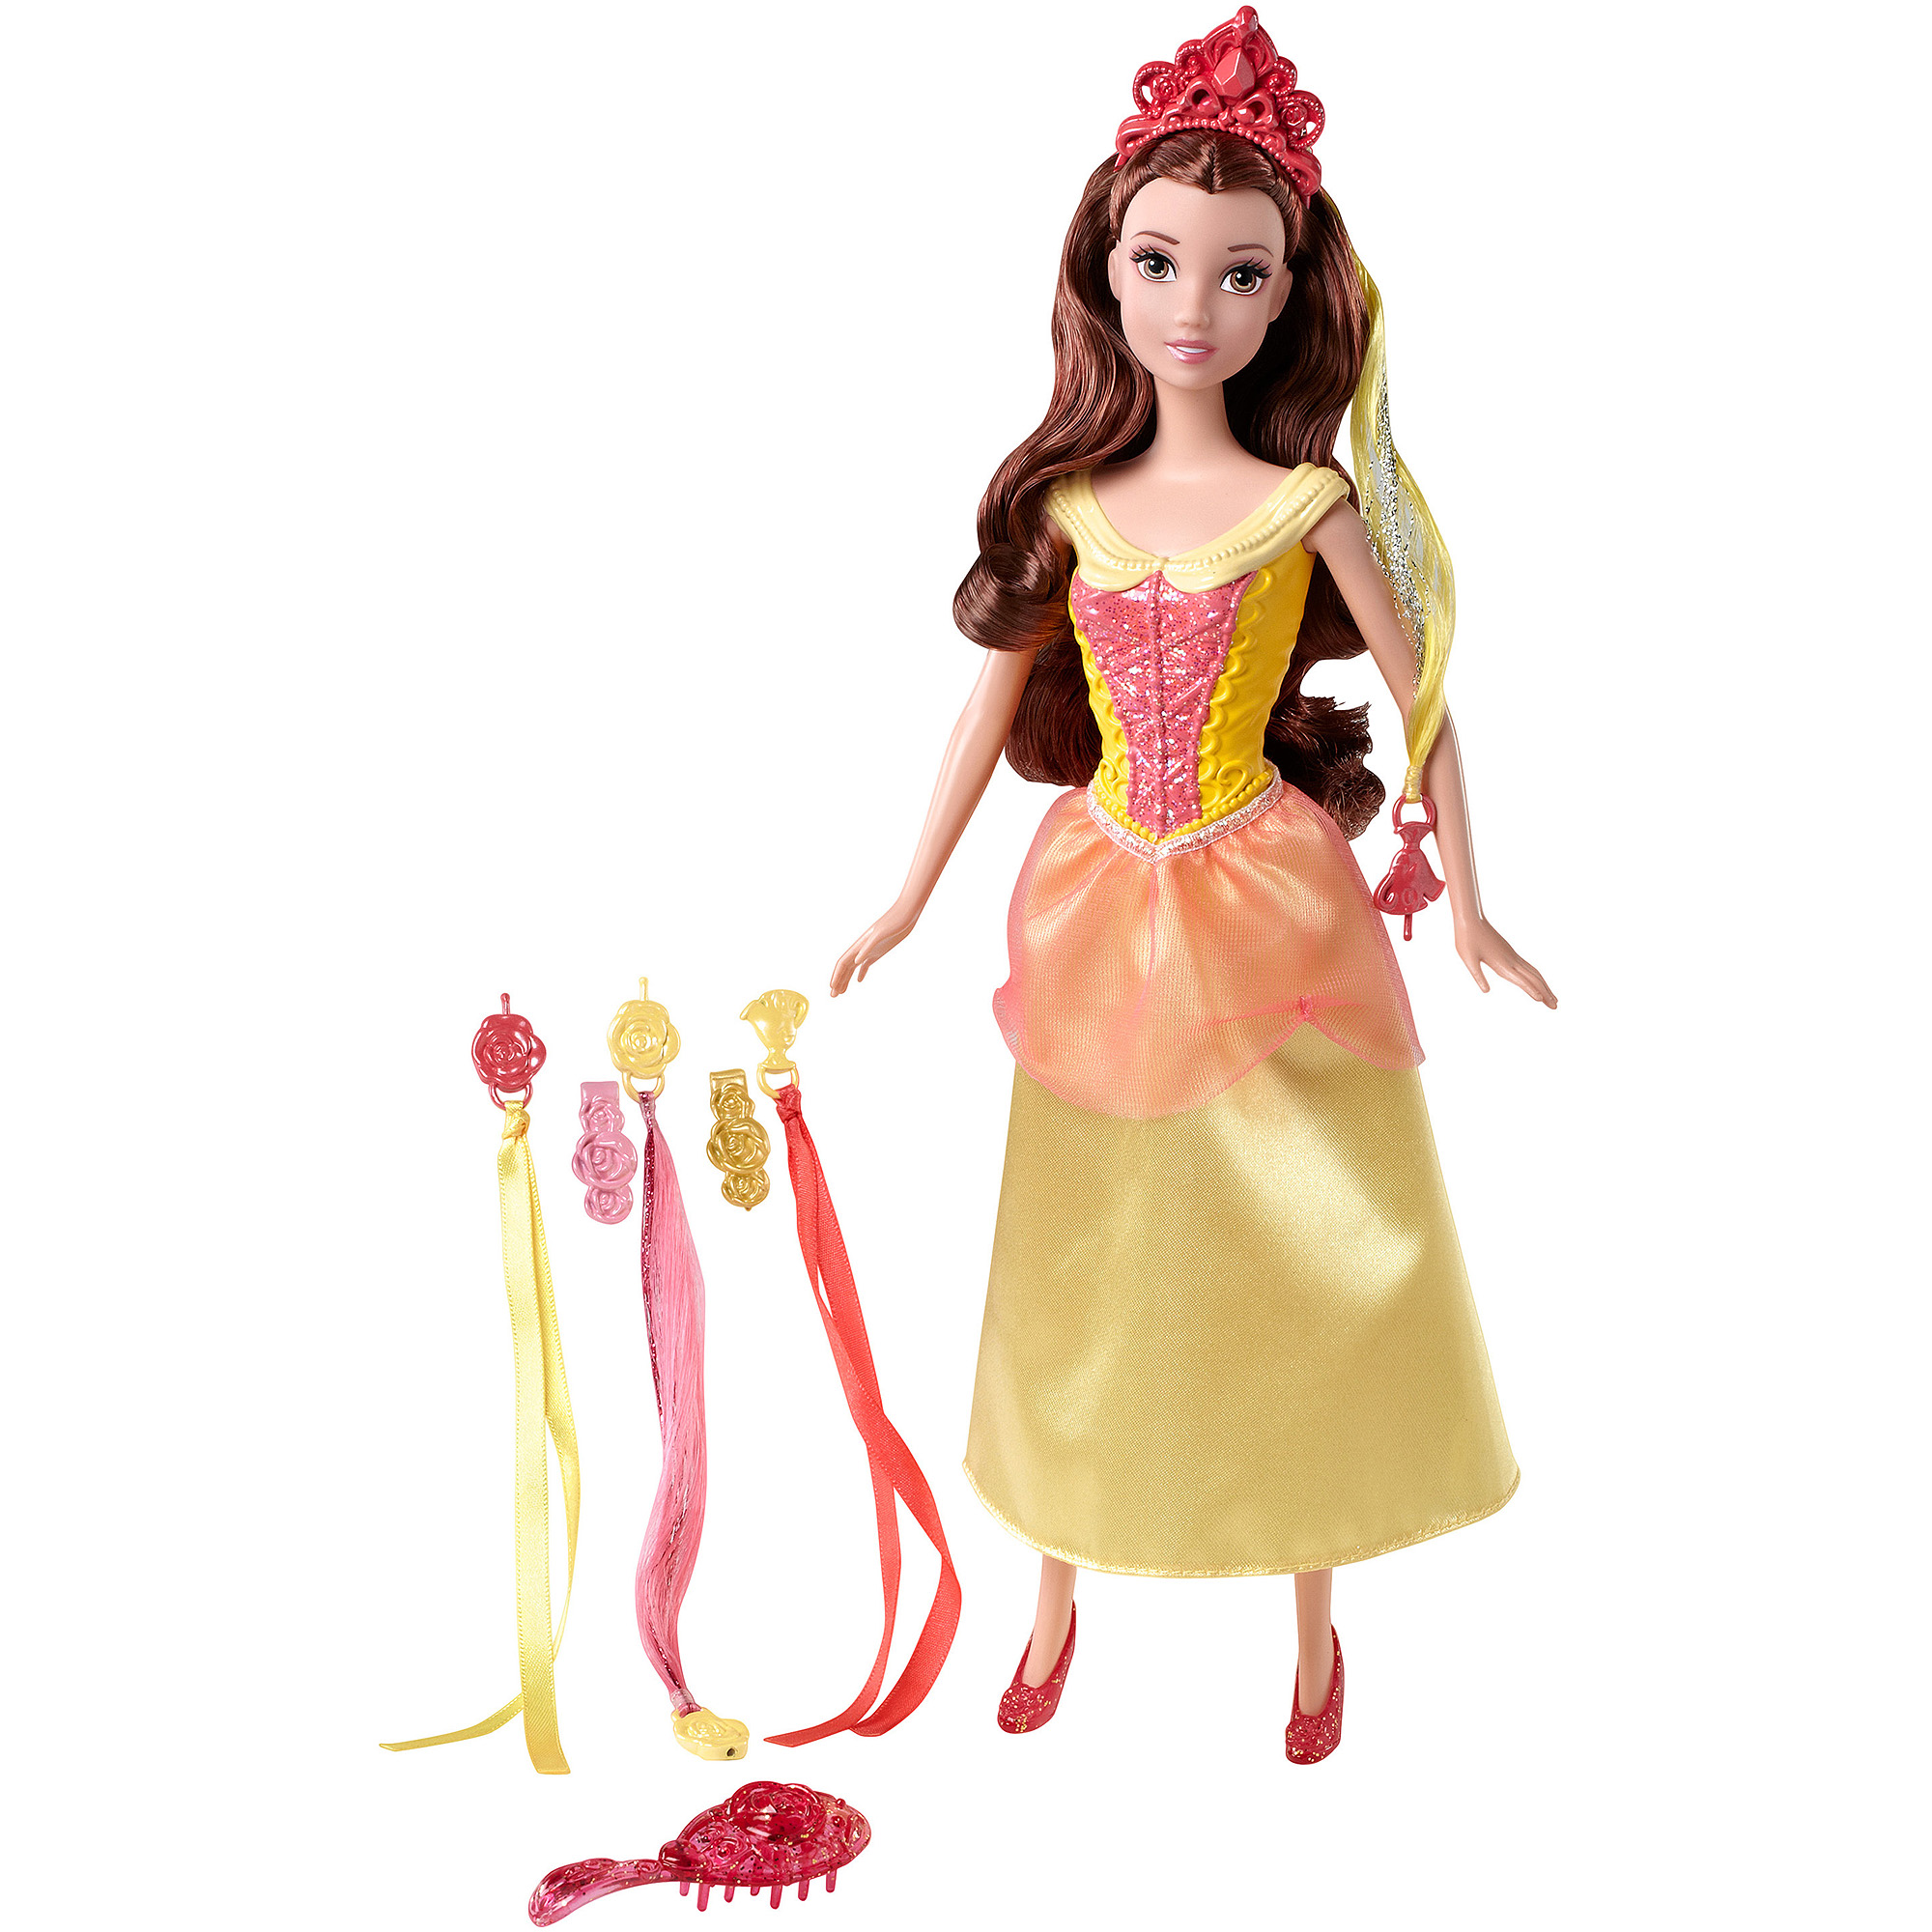 Disney Basic Hairplay Belle Doll with Hair Accessories